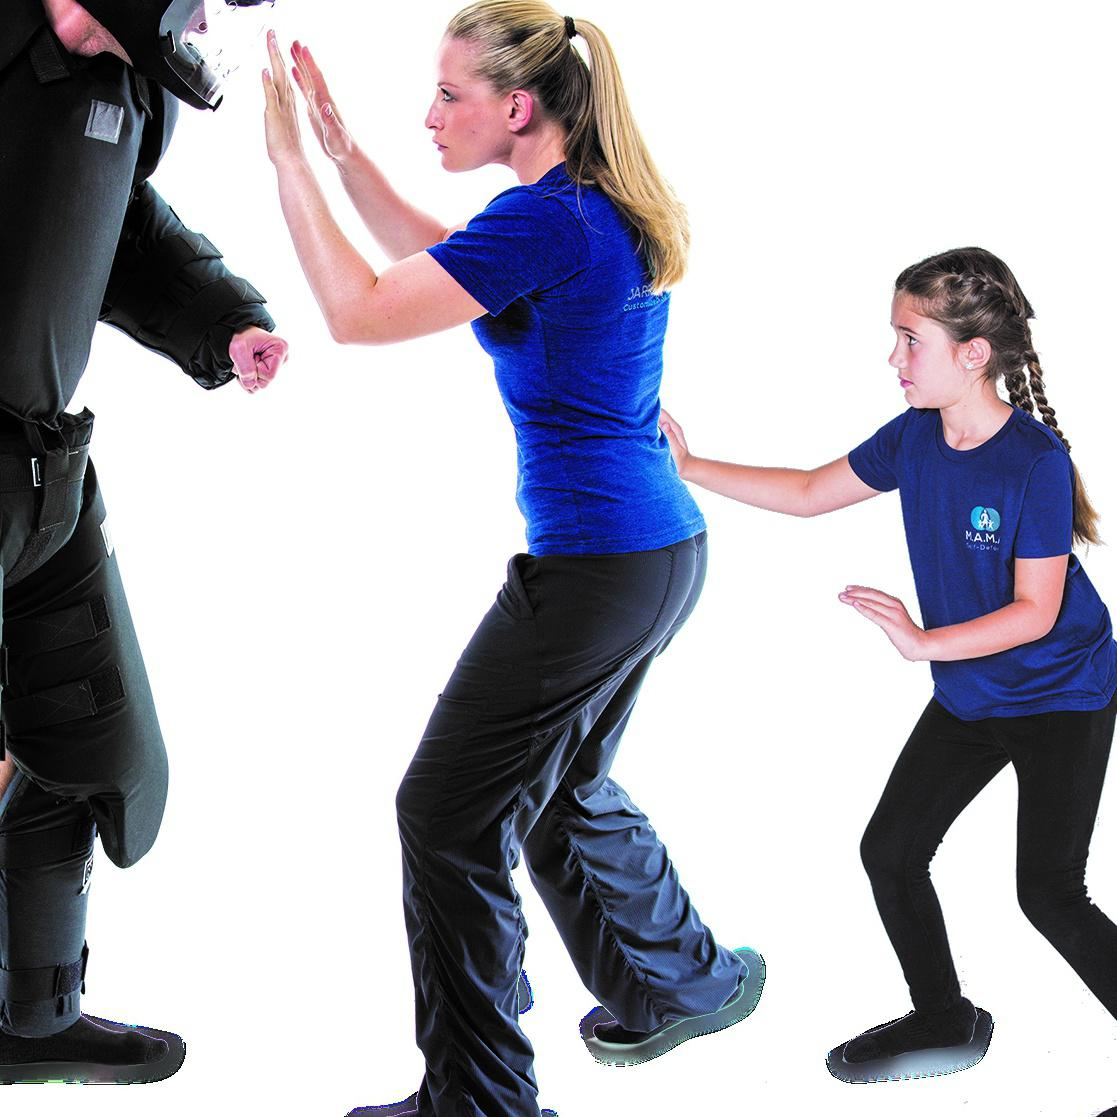 Martial arts pro Jarrett Arthur discovered that many women want to learn practical self-defense strategies that will work if they are with their kids--and find that traditional martial arts classes don't address the scenarios that worry them.